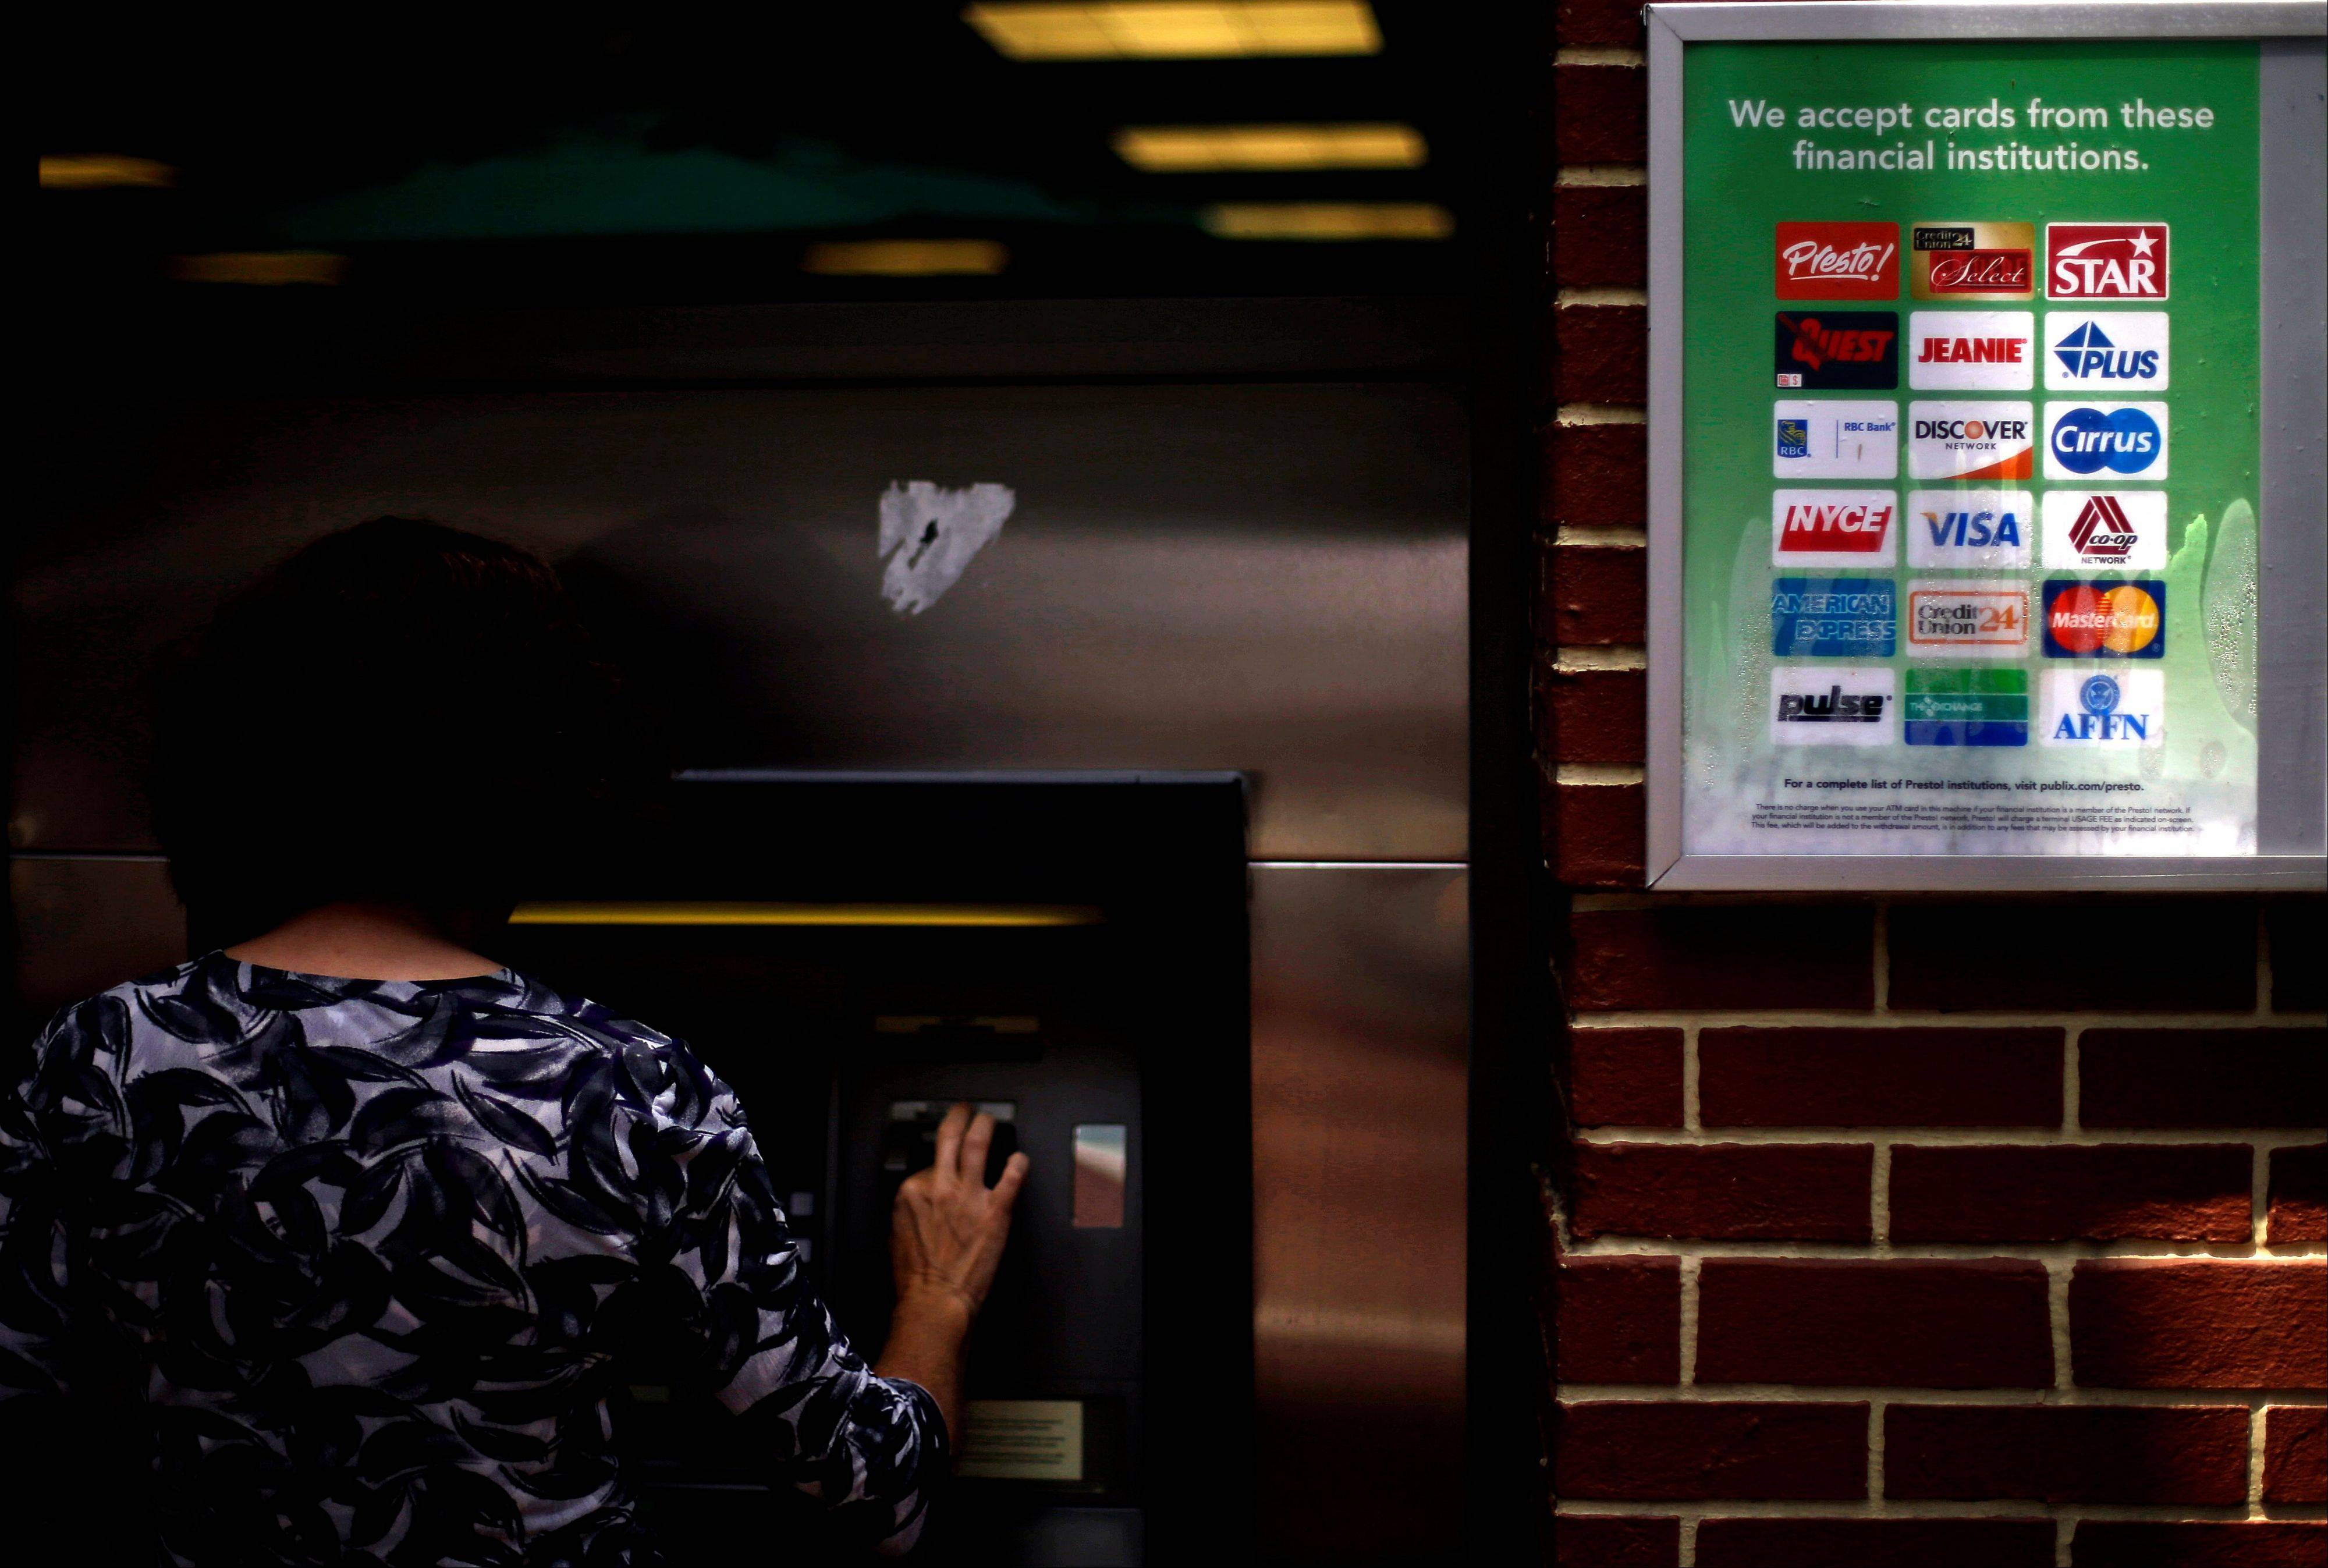 Associated Press/July 16, 2012 Credit logos are seen as a consumer withdraws money from an ATM in Atlanta.